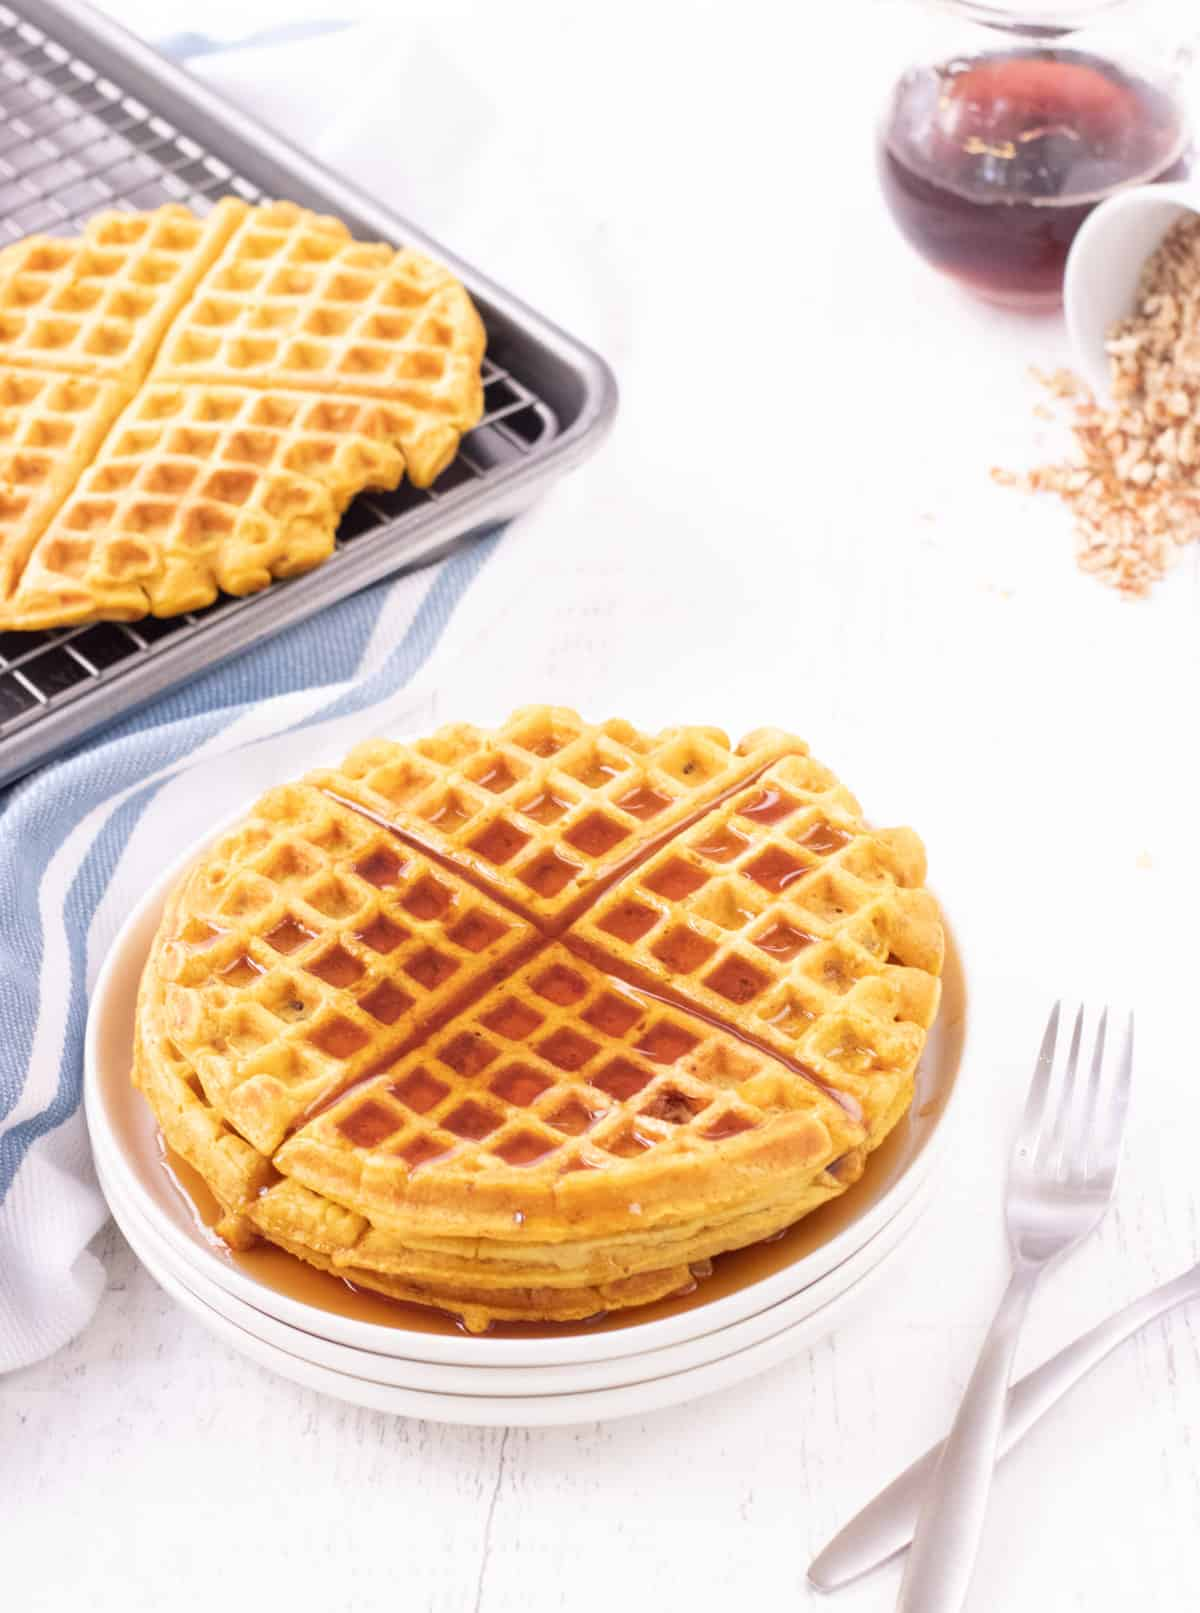 White plate of stacked pumpkin waffles with maple syrup on top and forks to side with baking sheet and rack of extra waffles and syrup and chopped nuts in upper backgrounds.